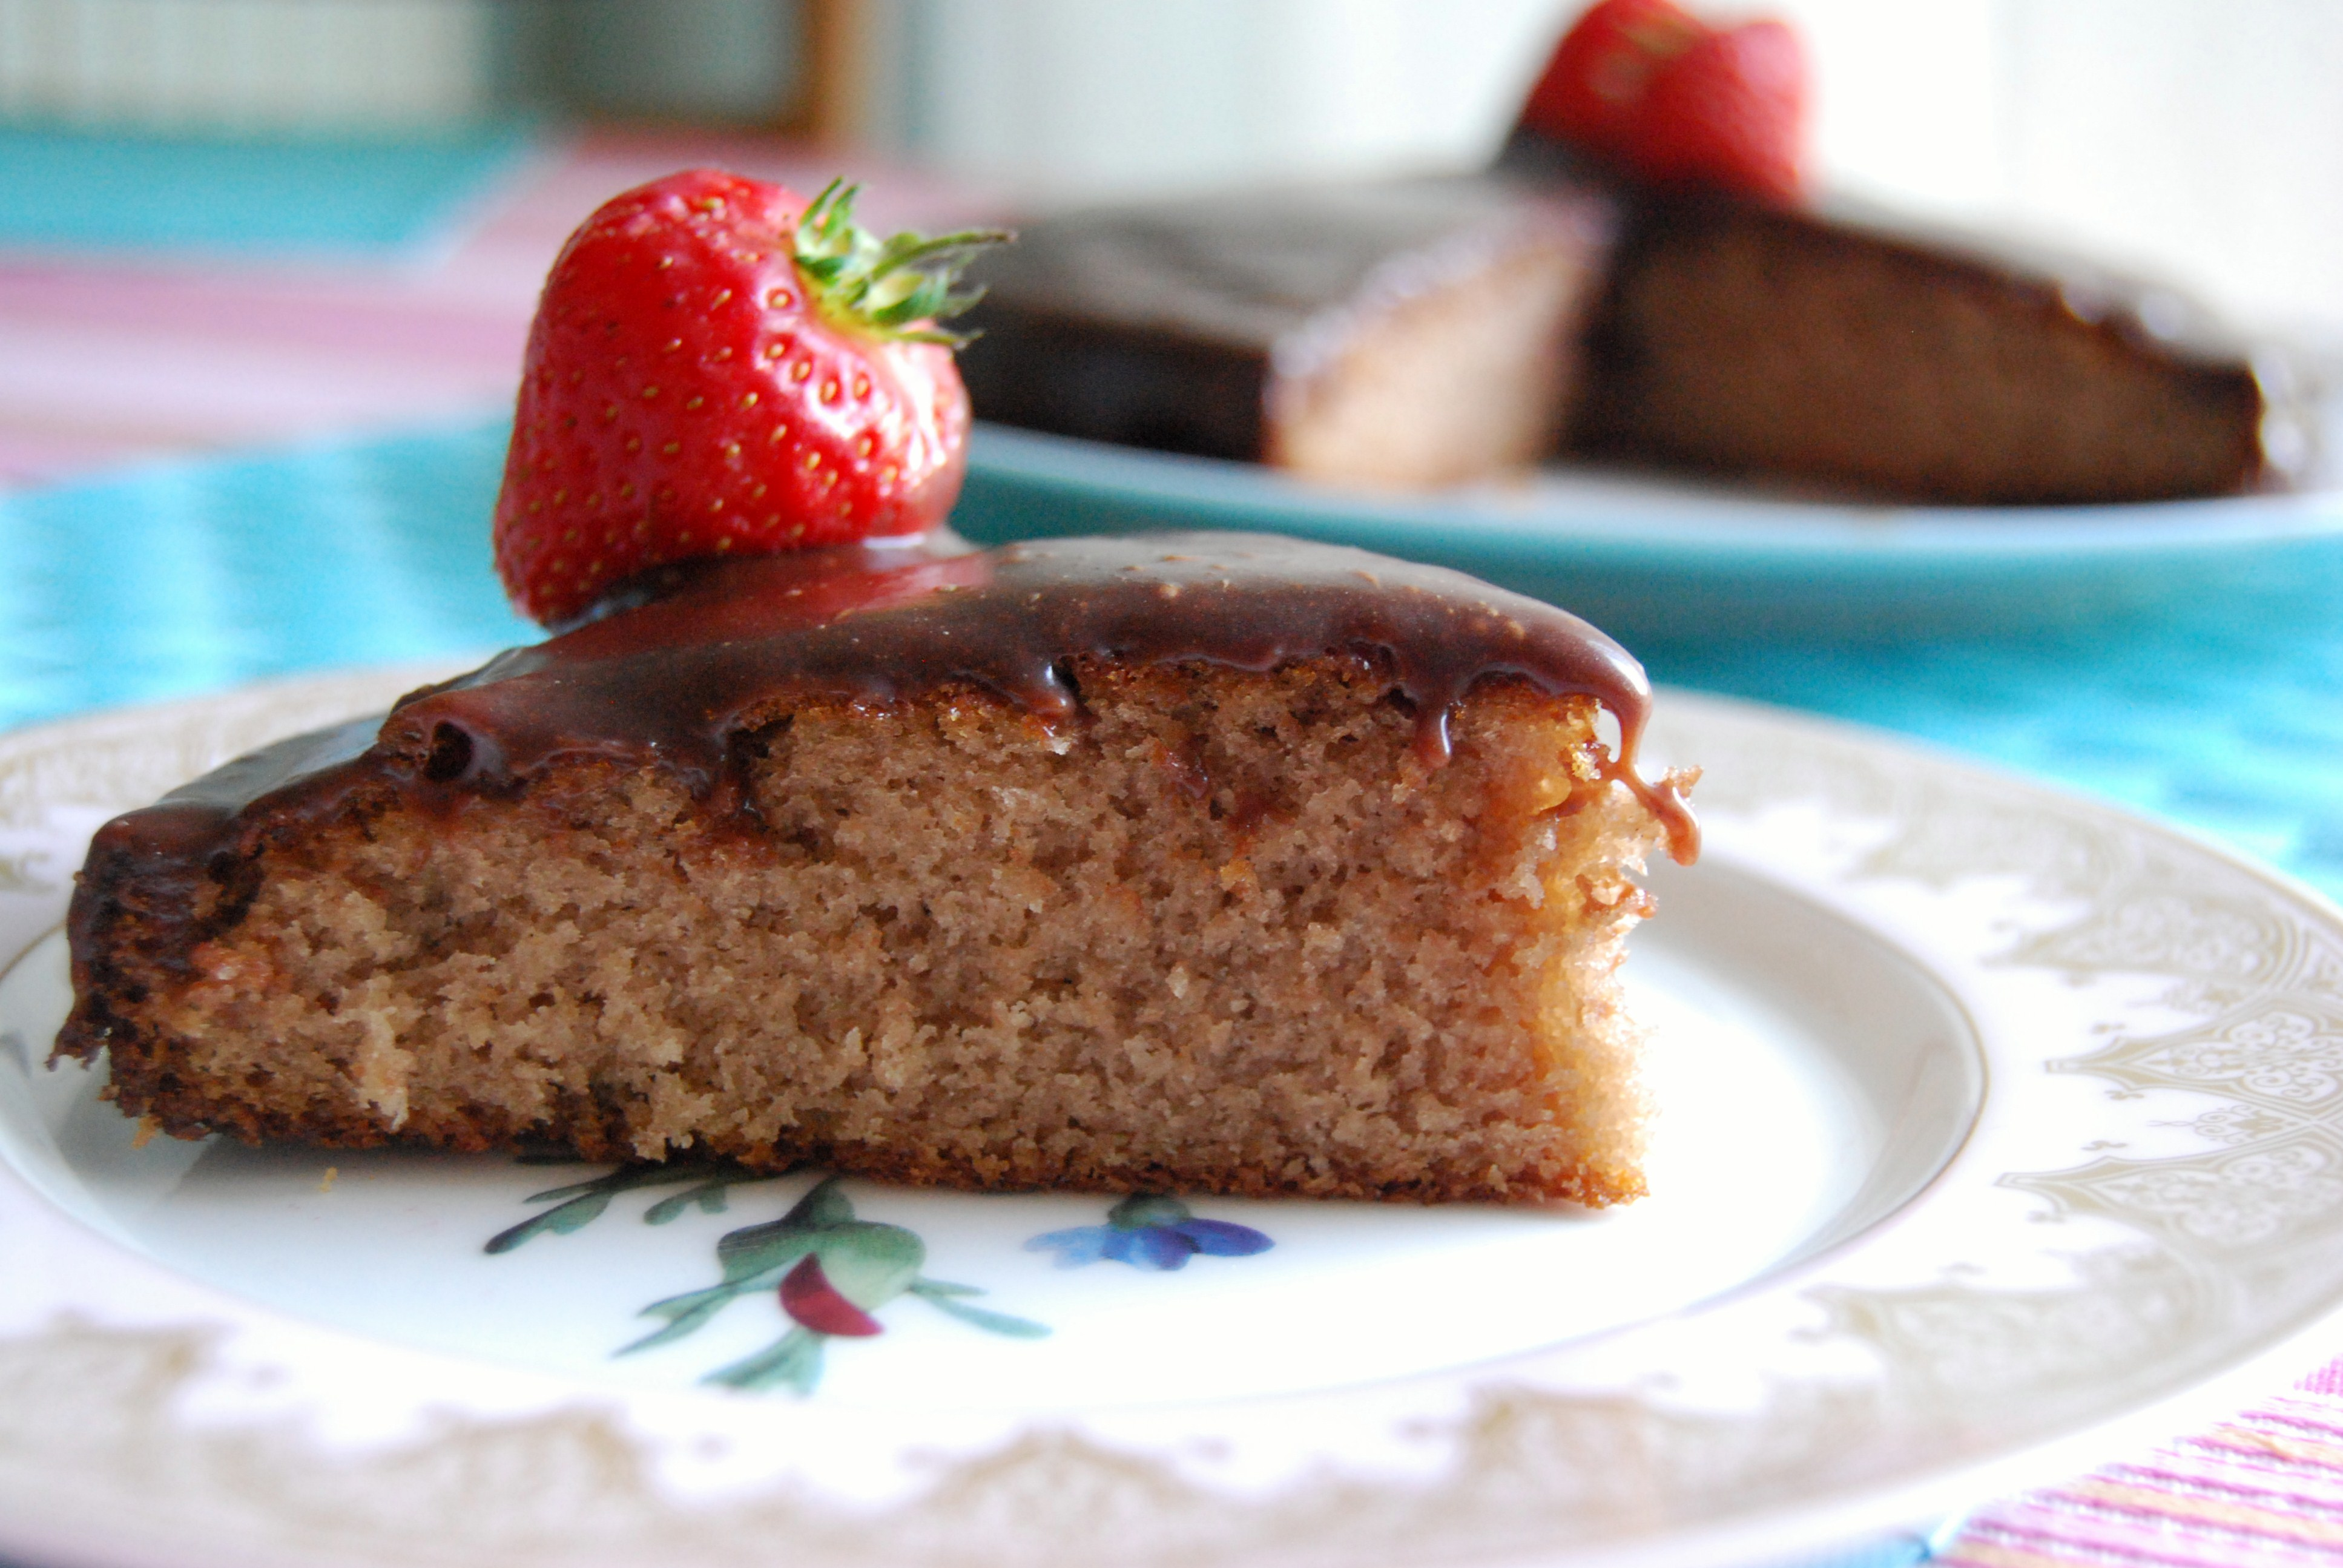 The Great British Bake off and Mary Berry's Chocolate Cake ...